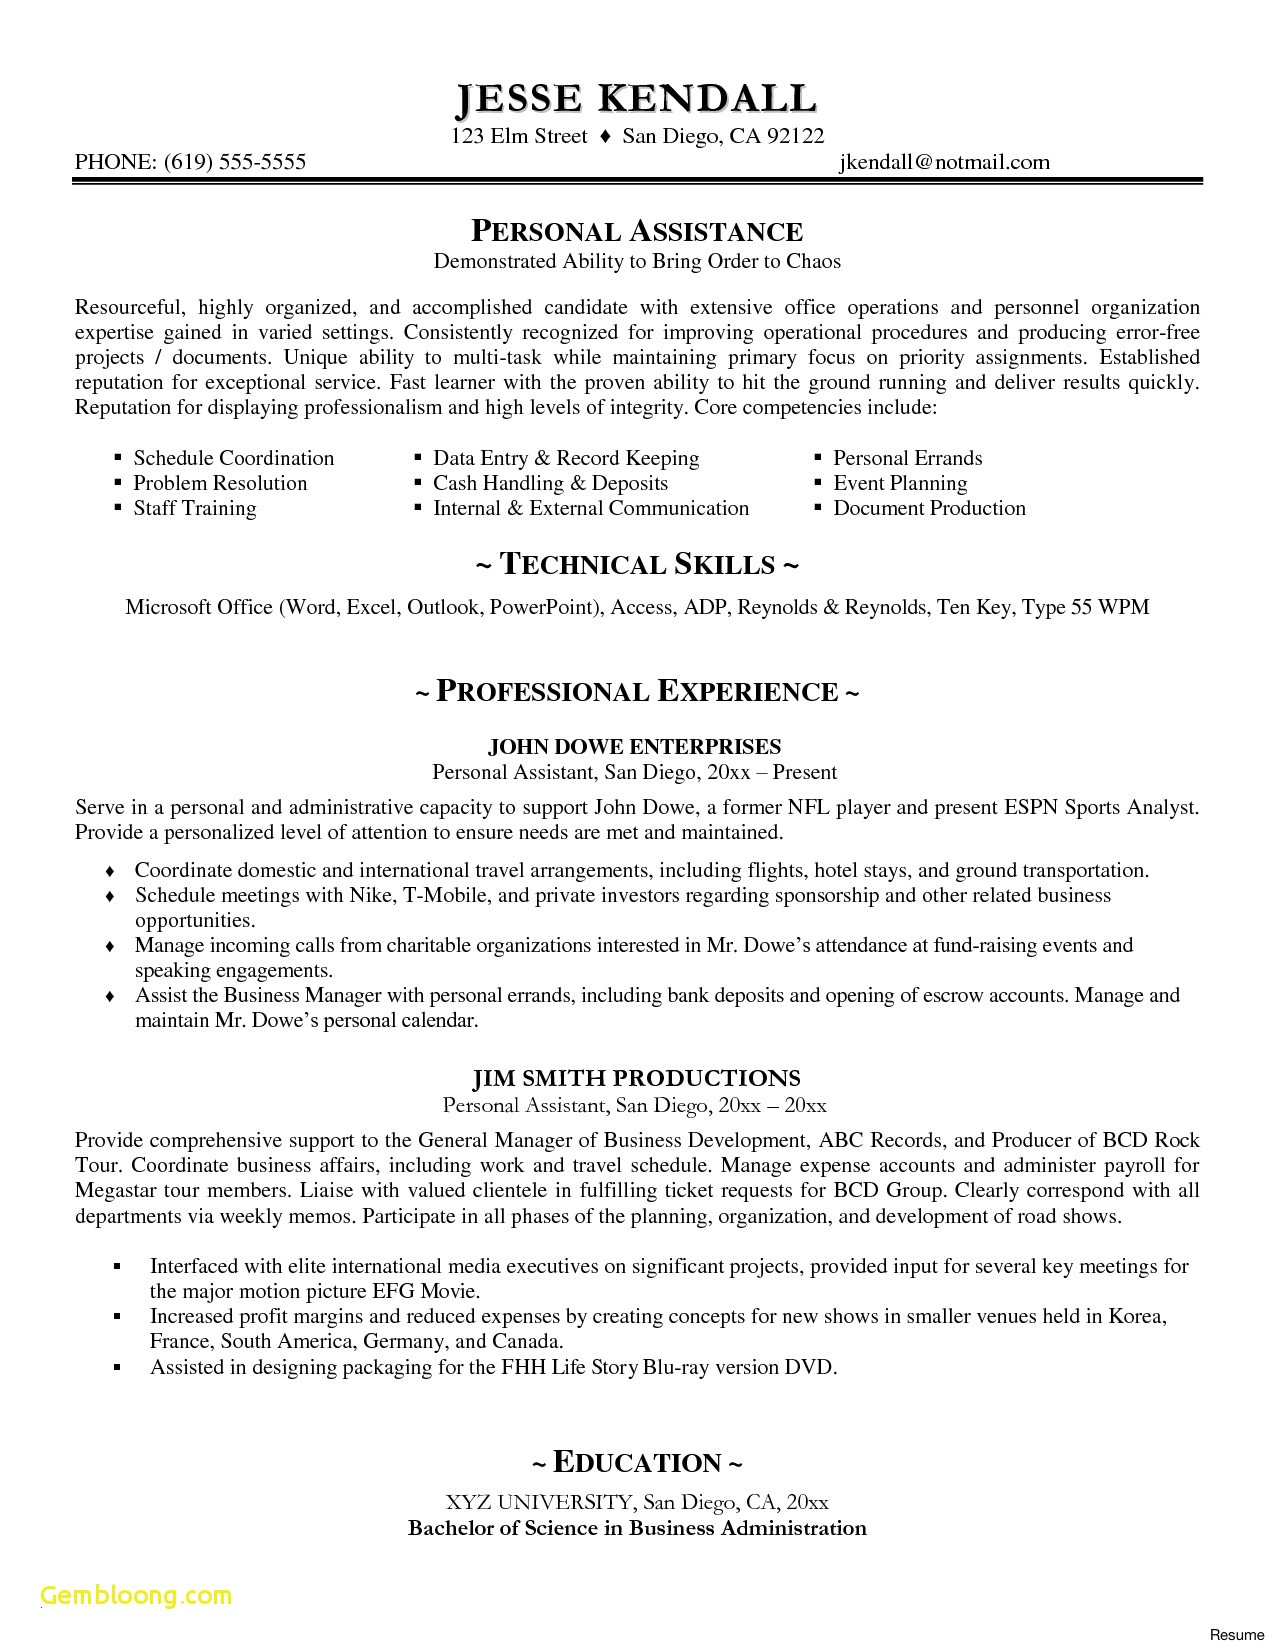 Cover Letter Template Download Doc - Word Resume Template Downloads Legalsocialmobilitypartnership